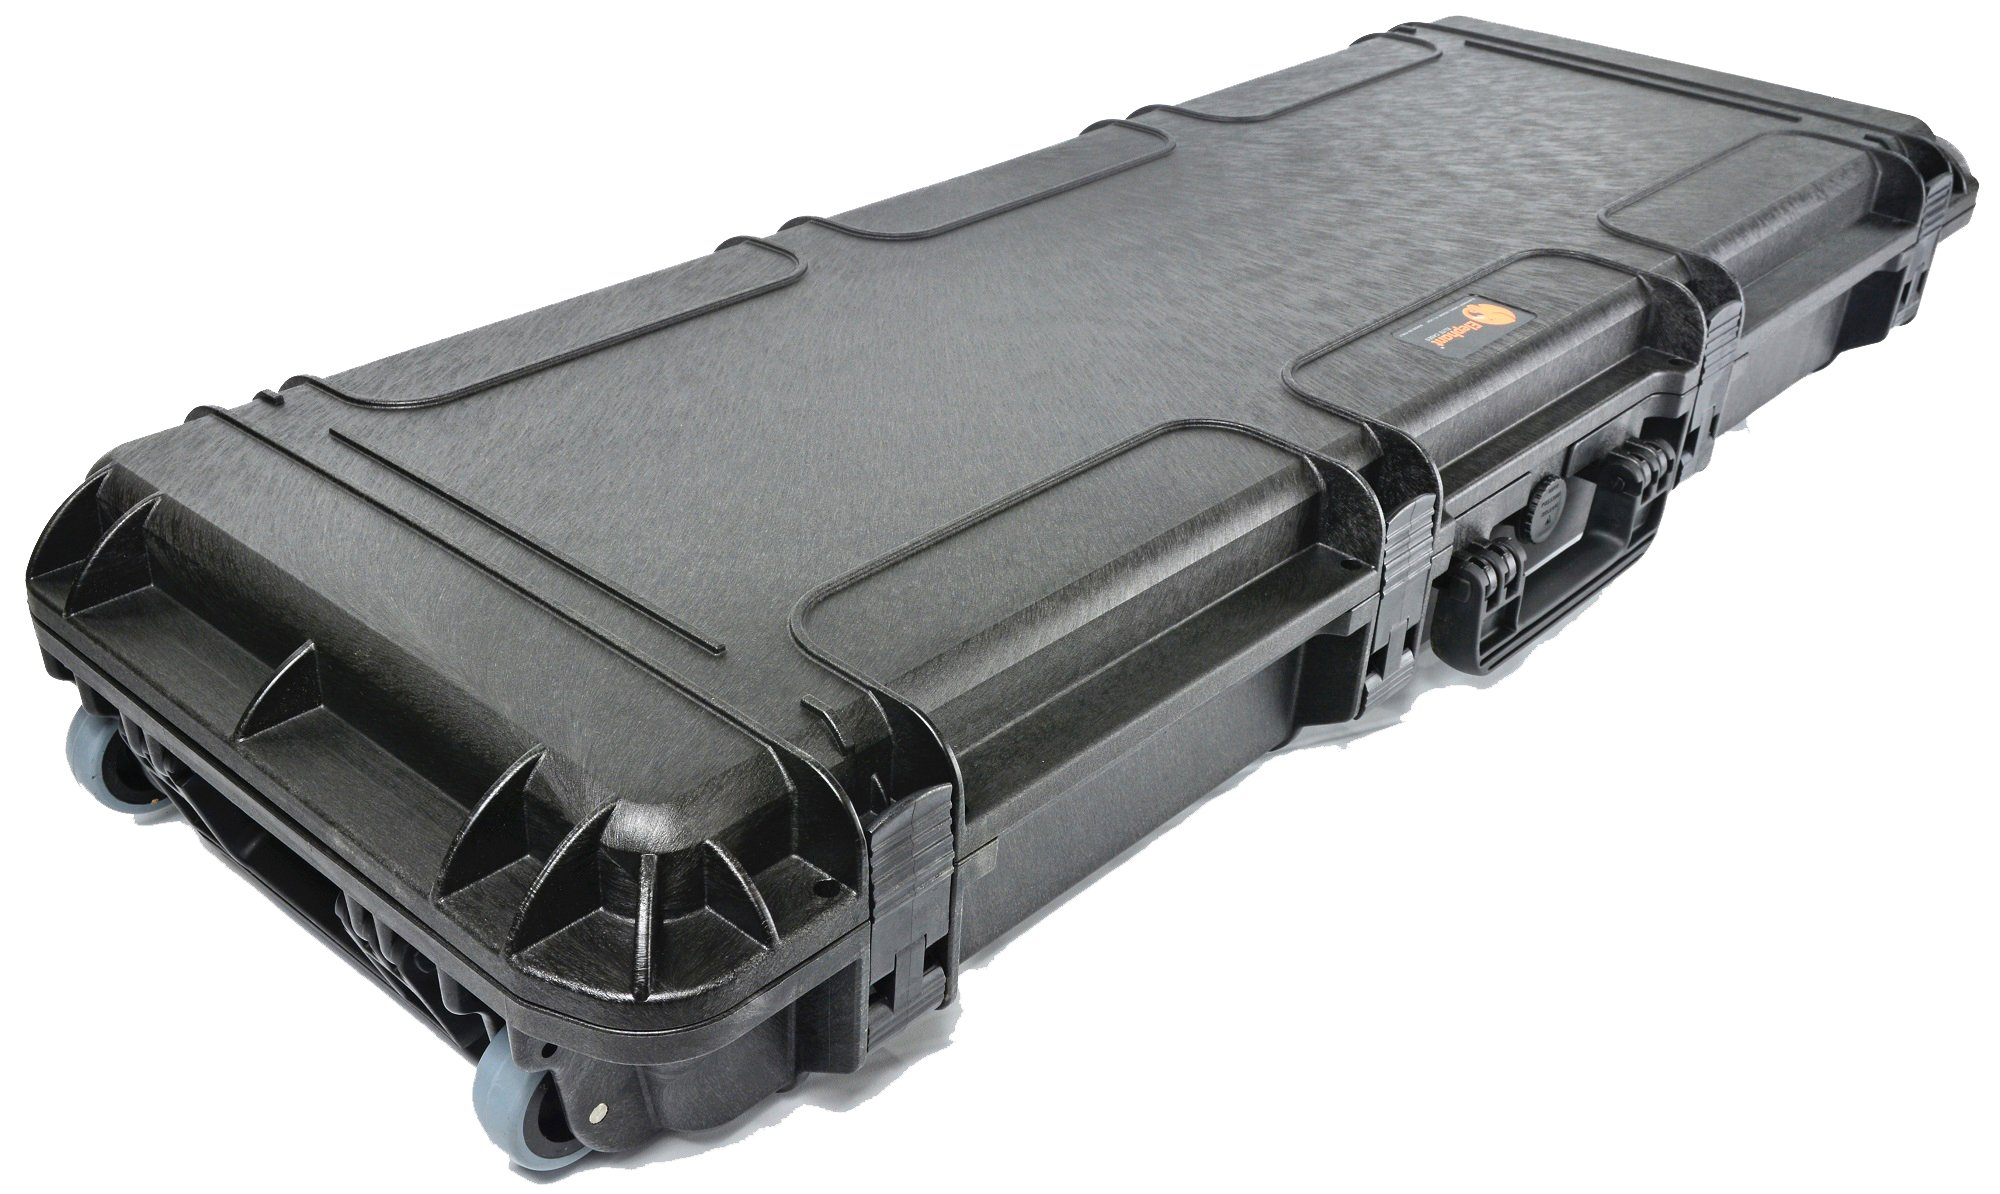 Waterproof Rifle Hard Case Elephant Elite EL4305W 43'' With Pre-Cubed Foam and Wheels for Hunting Long Rifle Shootgun with Magazines, Accessories or Handgun, Watertight Hard Plastic case